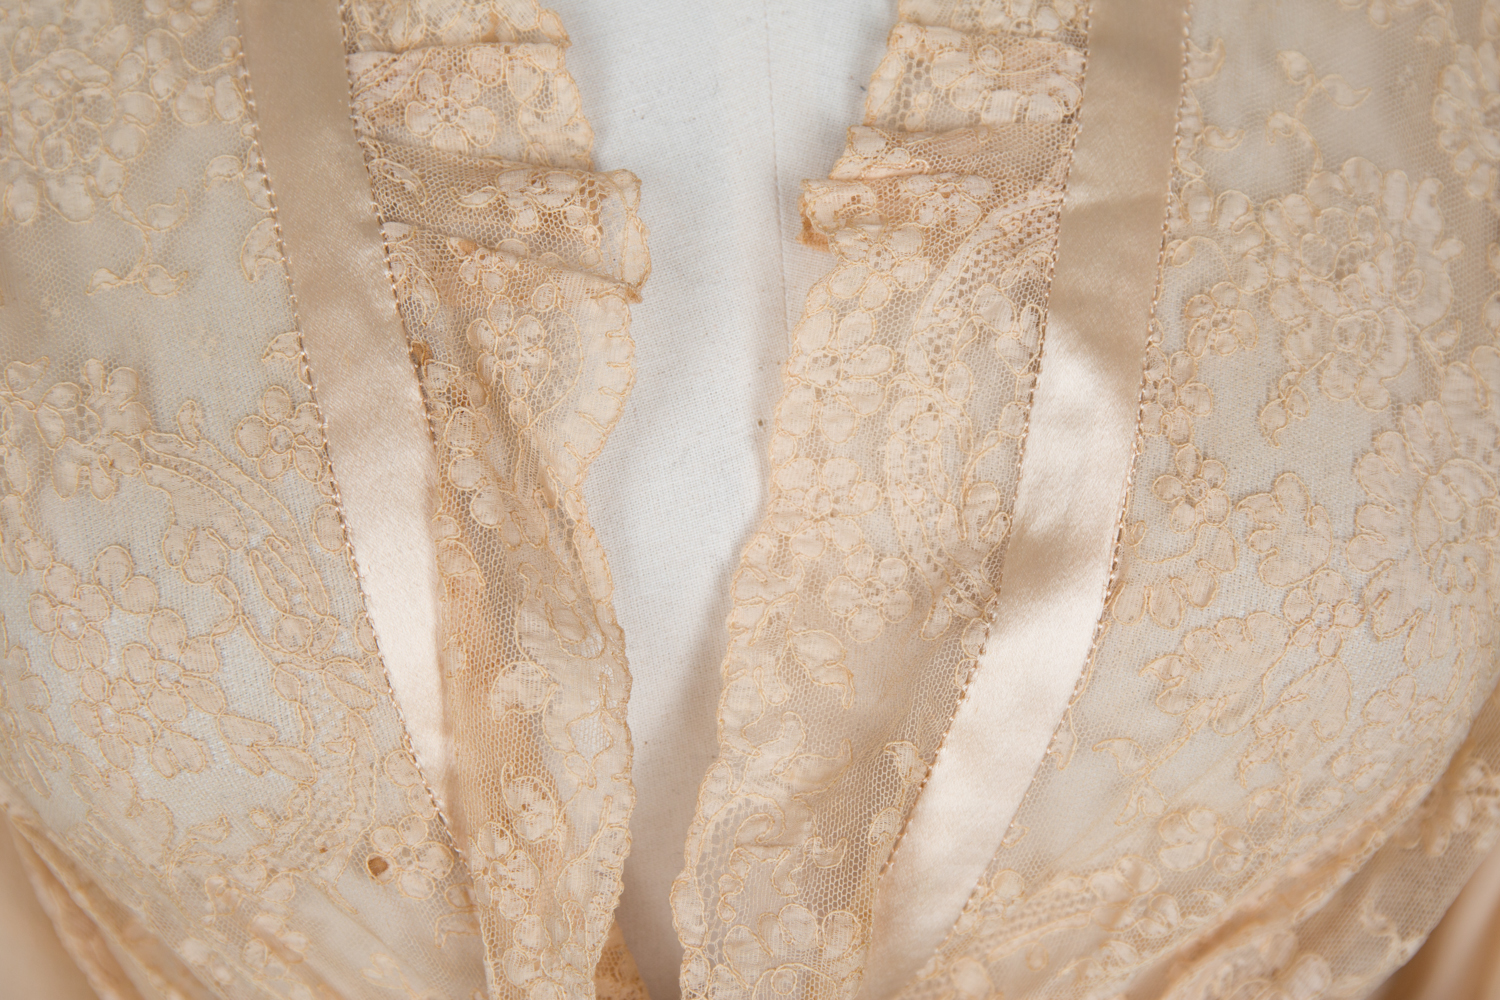 Bias Cut Silk Crepe & Corded Lace Peignoir by Bullock's Wilshire , c. 1940s, USA. The Underpinnings Museum. Photography by Tigz Rice.